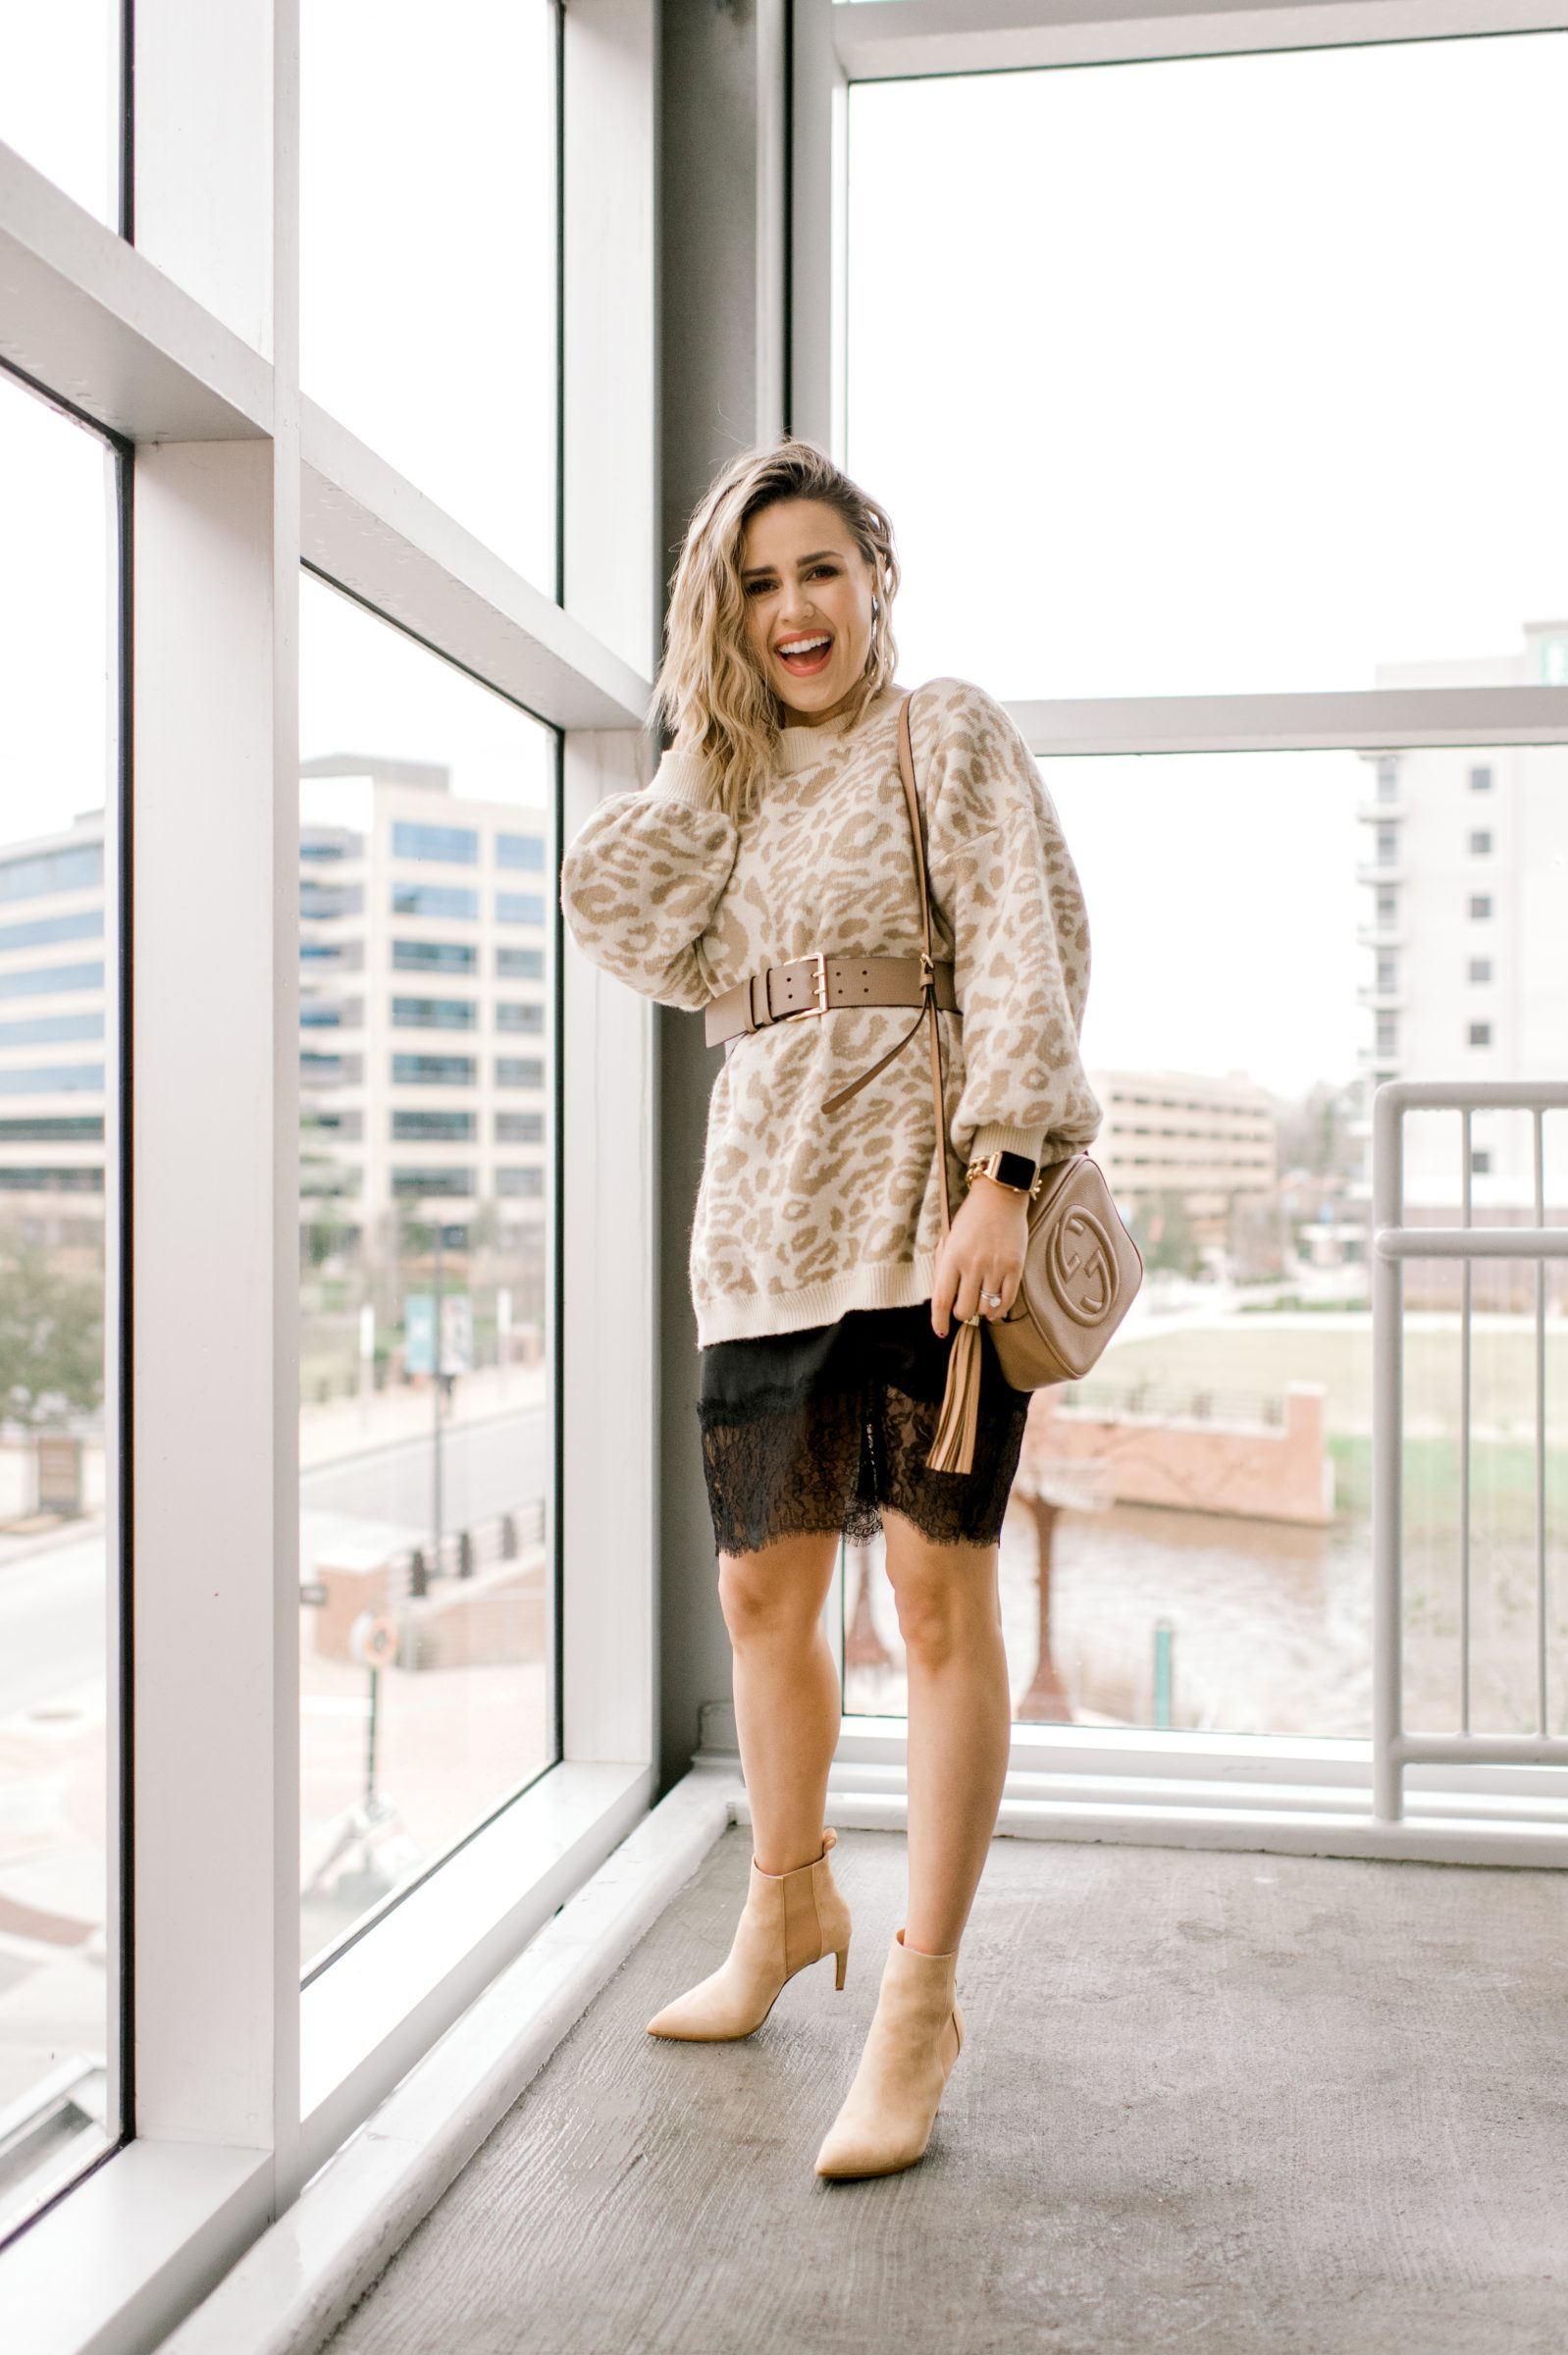 Houston fashion blogger Uptown with Elly Brown wears a layers her sweater over a slip dress for winter